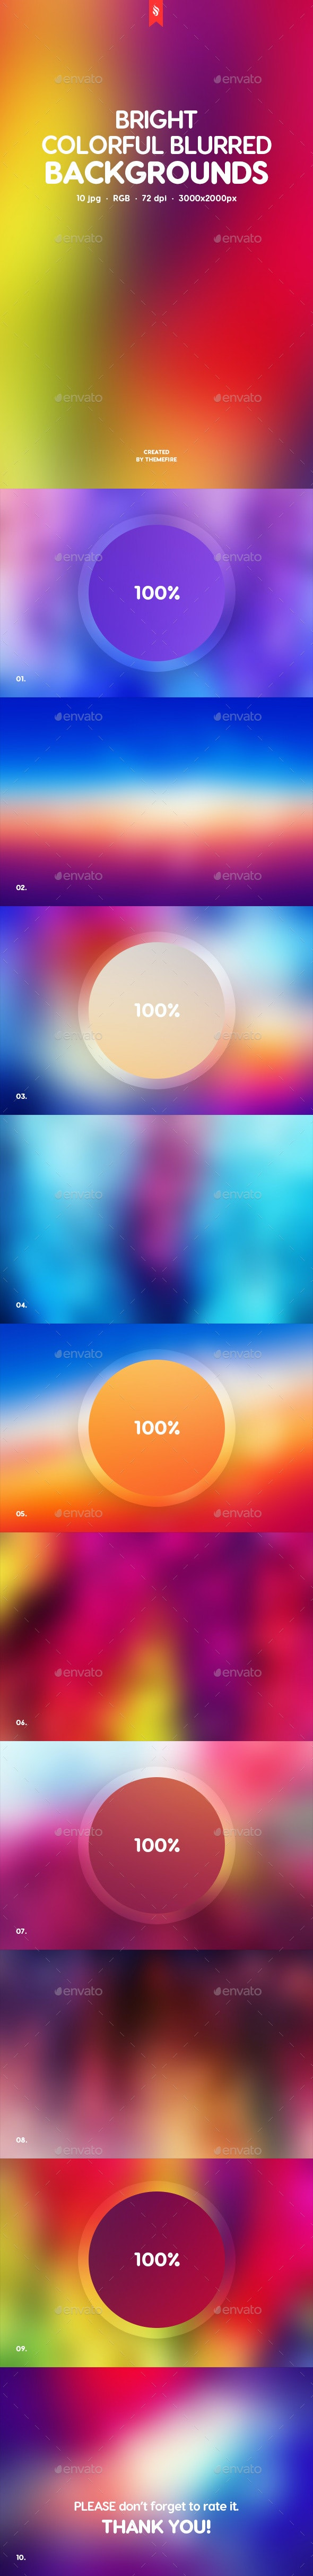 Bright Colorful Blurred Backgrounds - Backgrounds Graphics